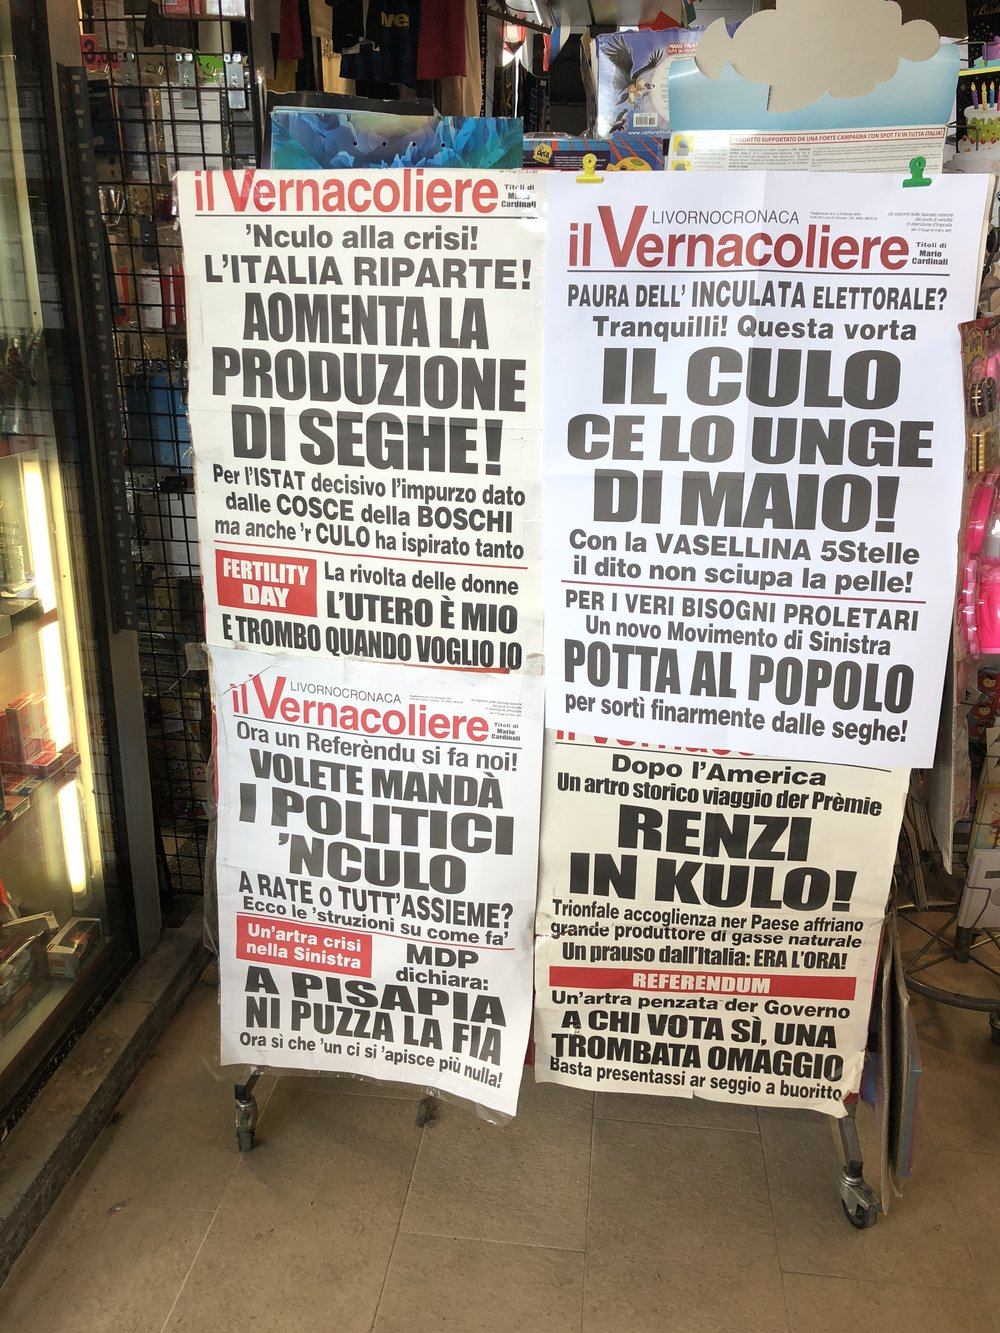 / - Milan-Italy: I don't understand Italian but I do understand «Referendum & Culo »